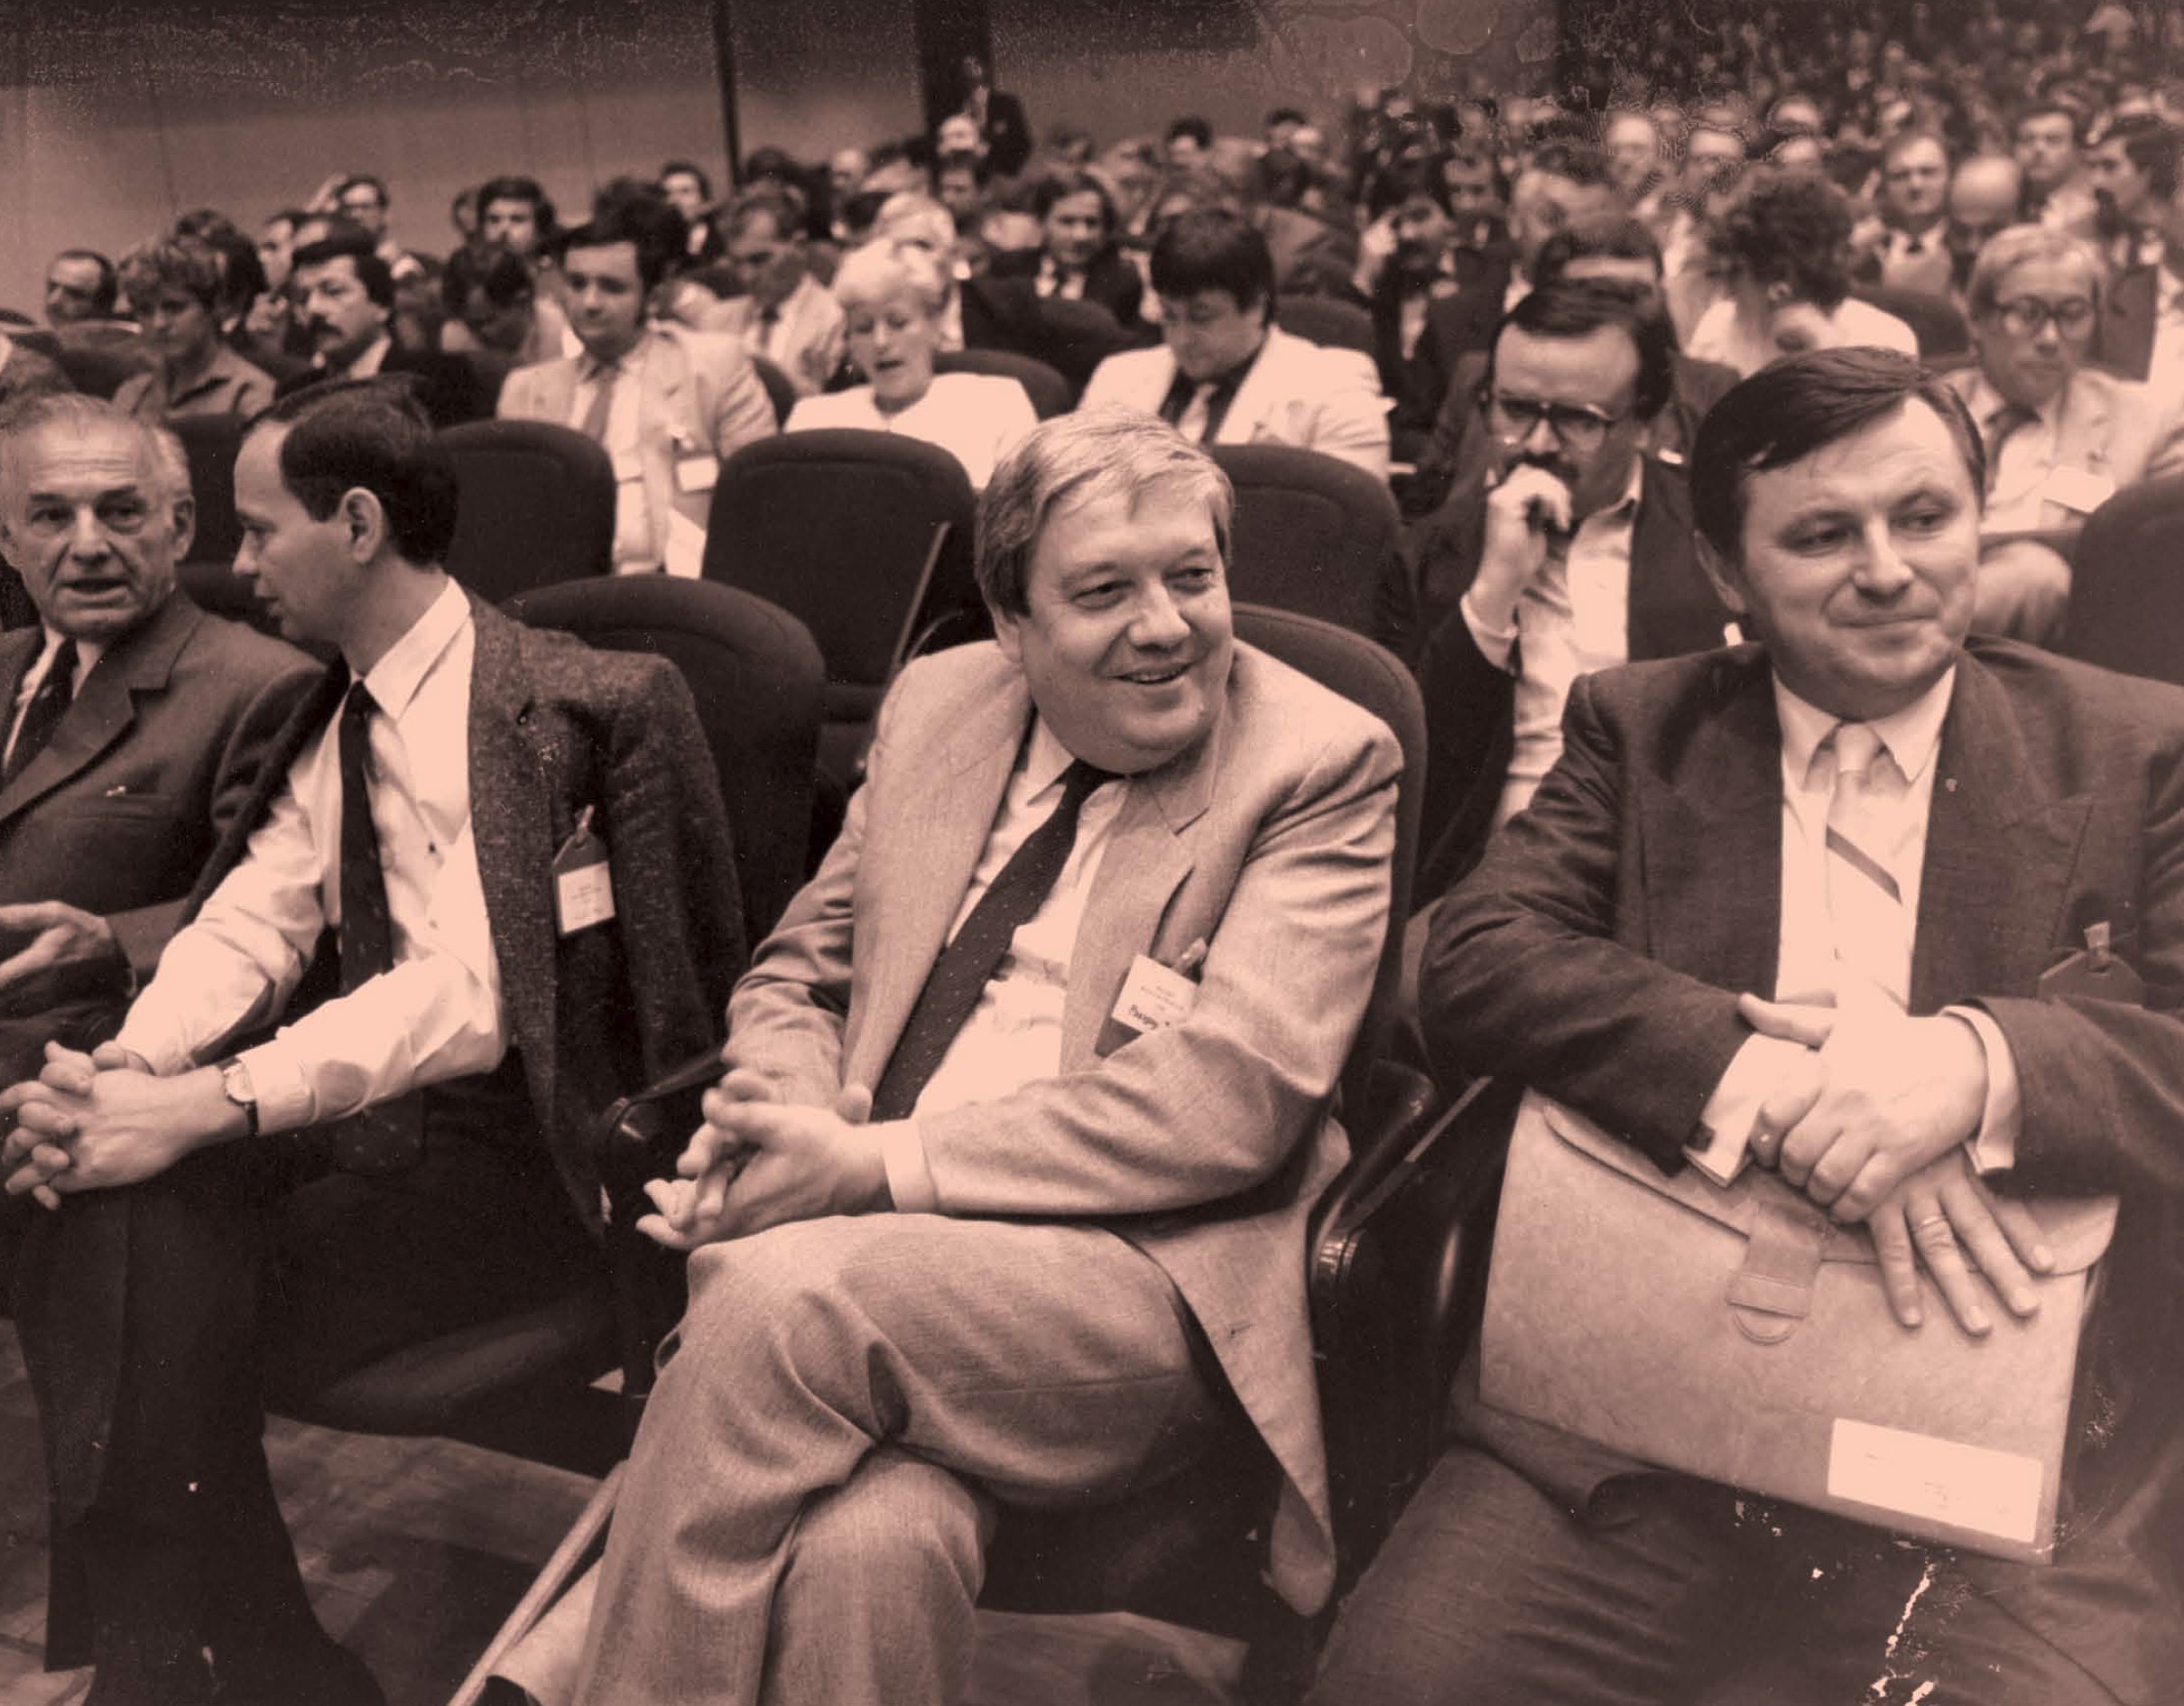 The round table meets in Budapest in the second half of 1989 to negotiate the new political order in Hungary.